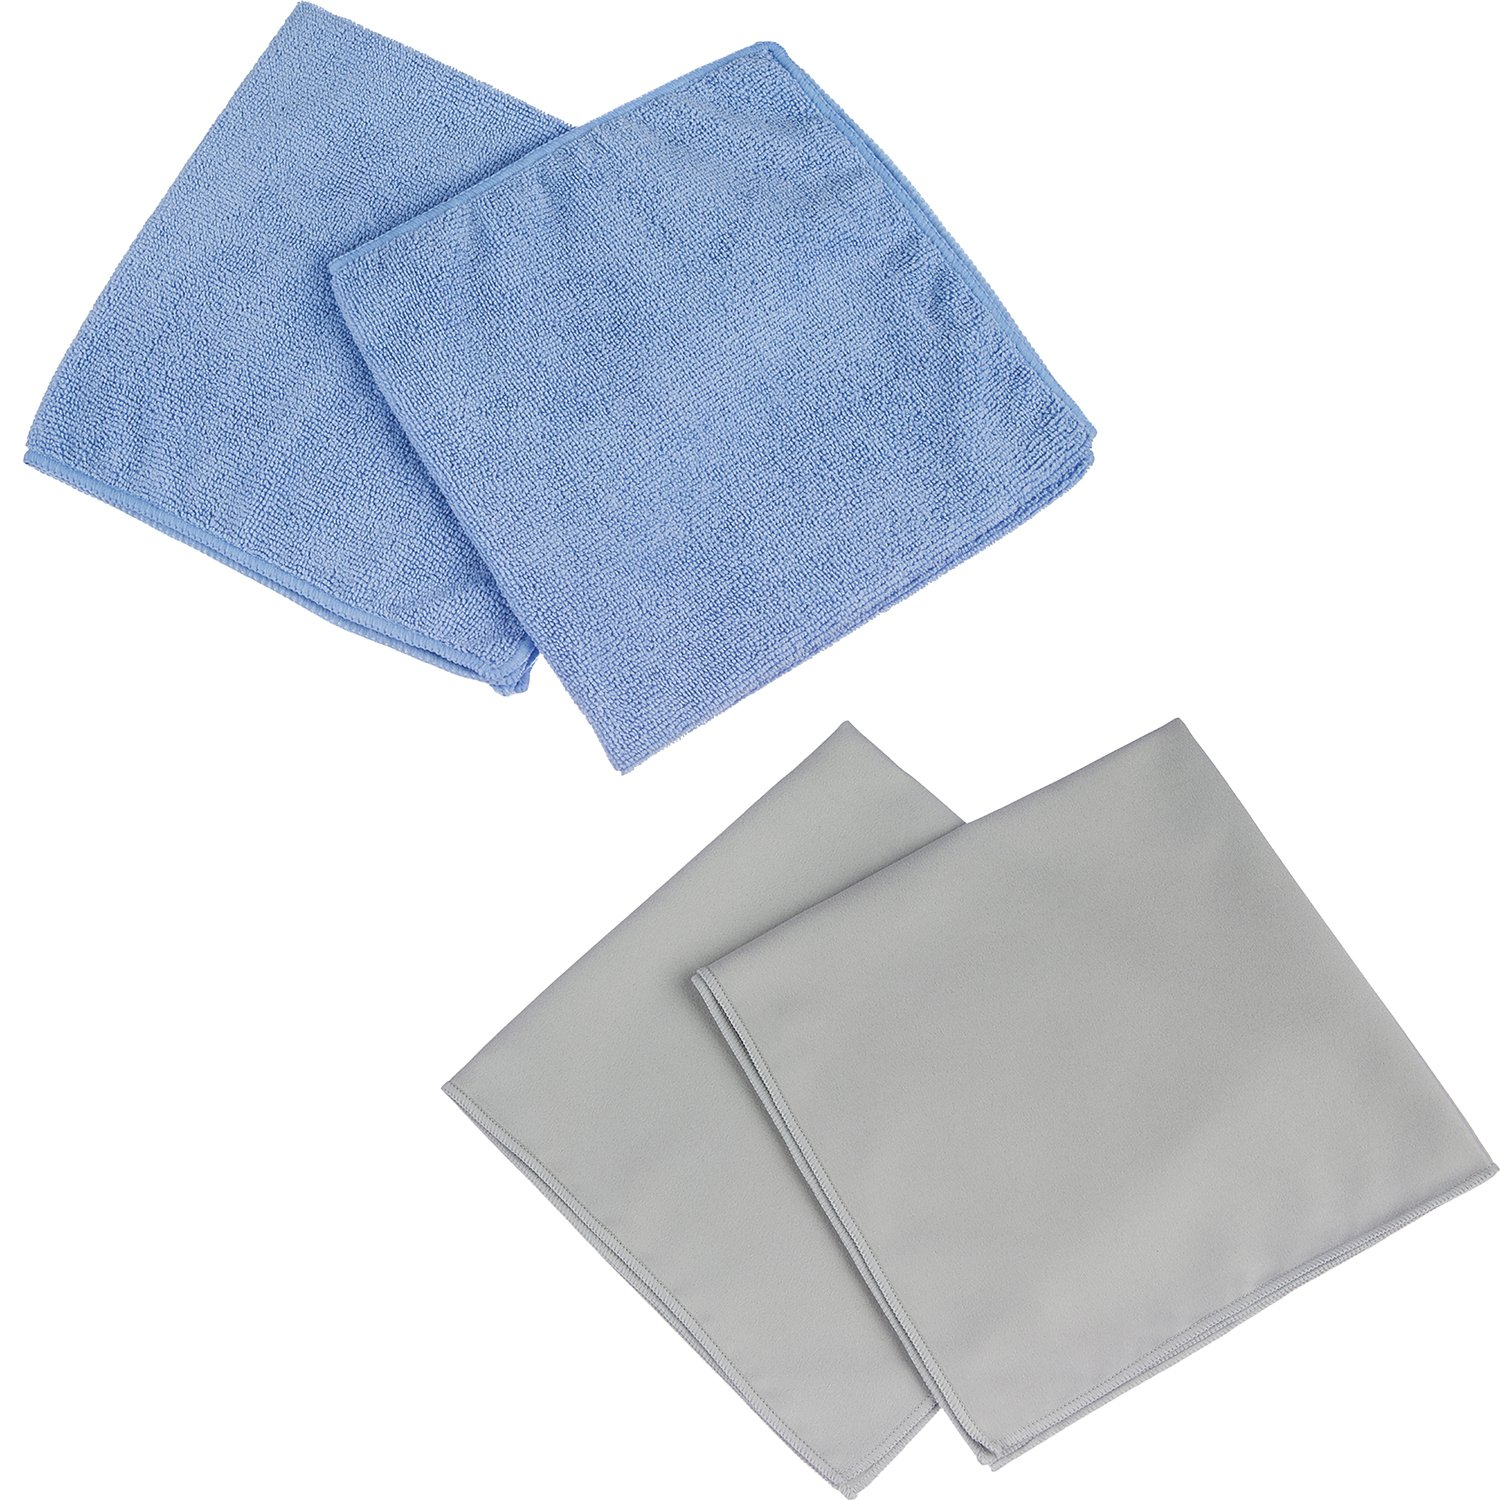 Antibacterial Microfiber Cleaning Cloth - Kills Bacteria, Odors, Viruses - Safe for Kids & Pets - 4 Pack Contains 2 Household and 2 Glass Cleaning Cloths